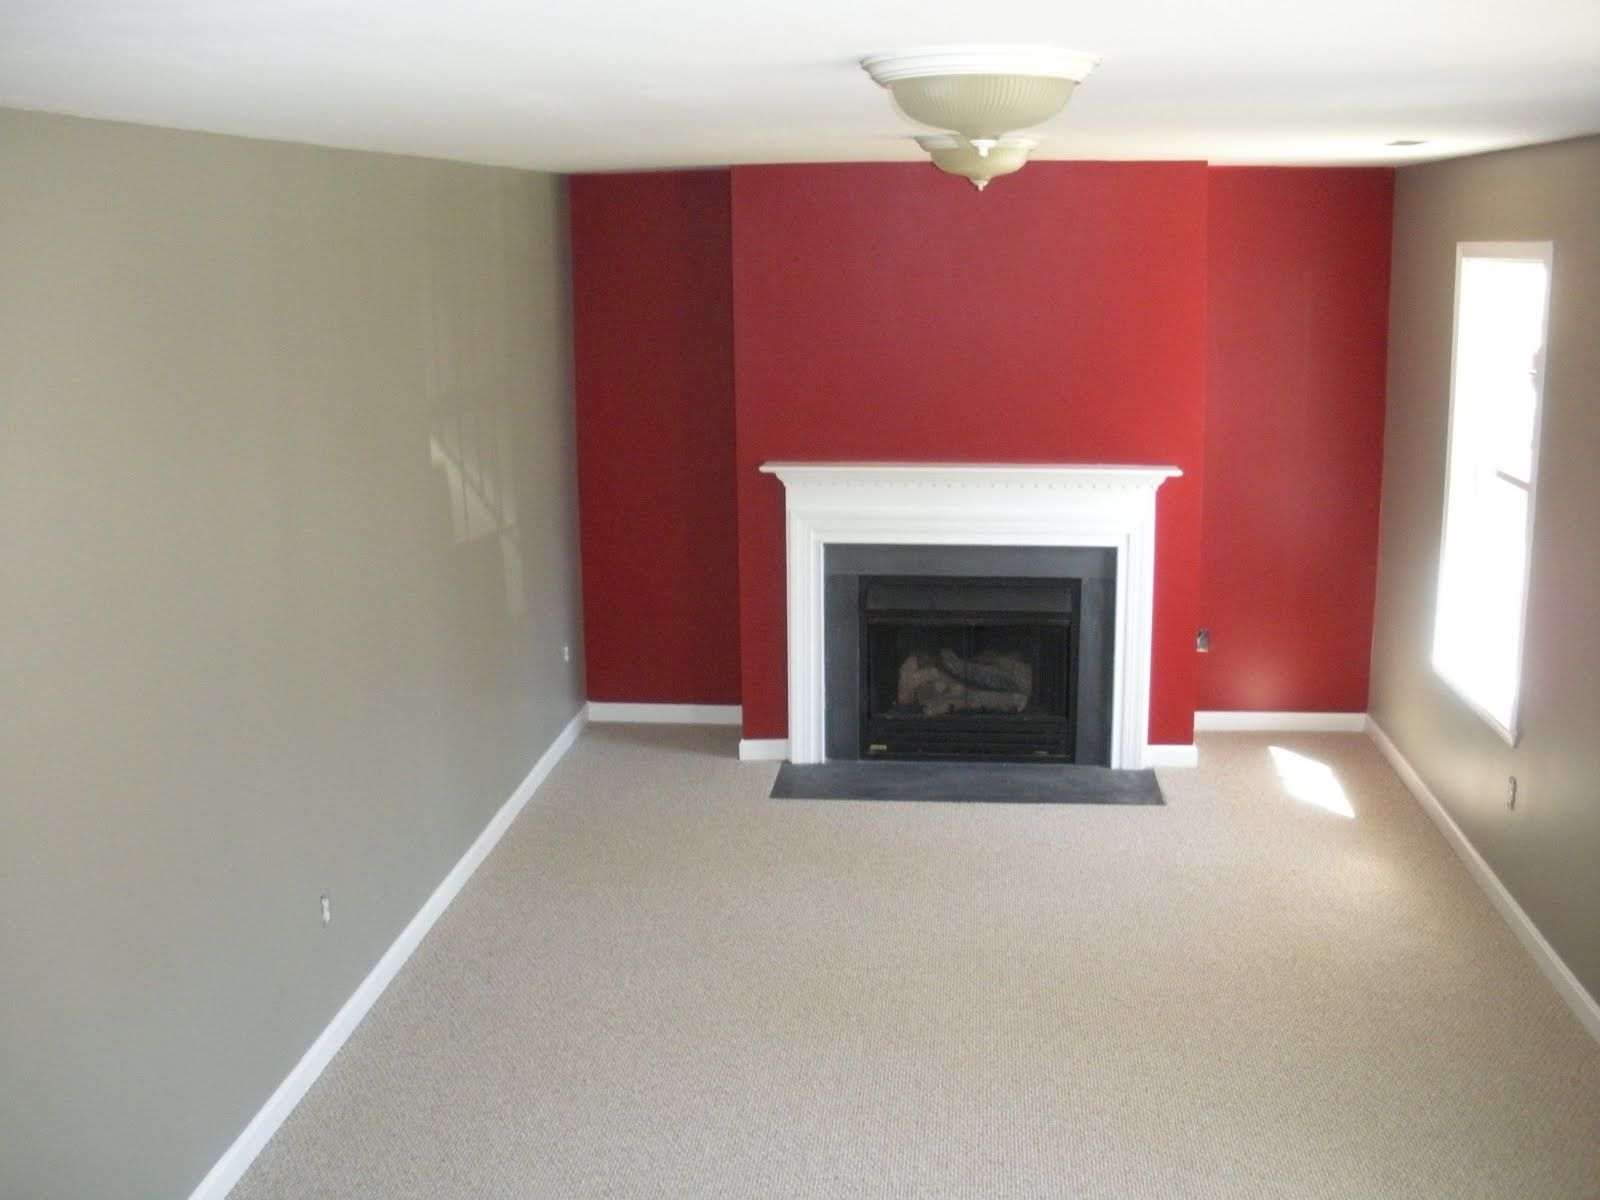 Living Room Paint Ideas Red benjamin moore caliente red, rockport gray, and wilmington tan